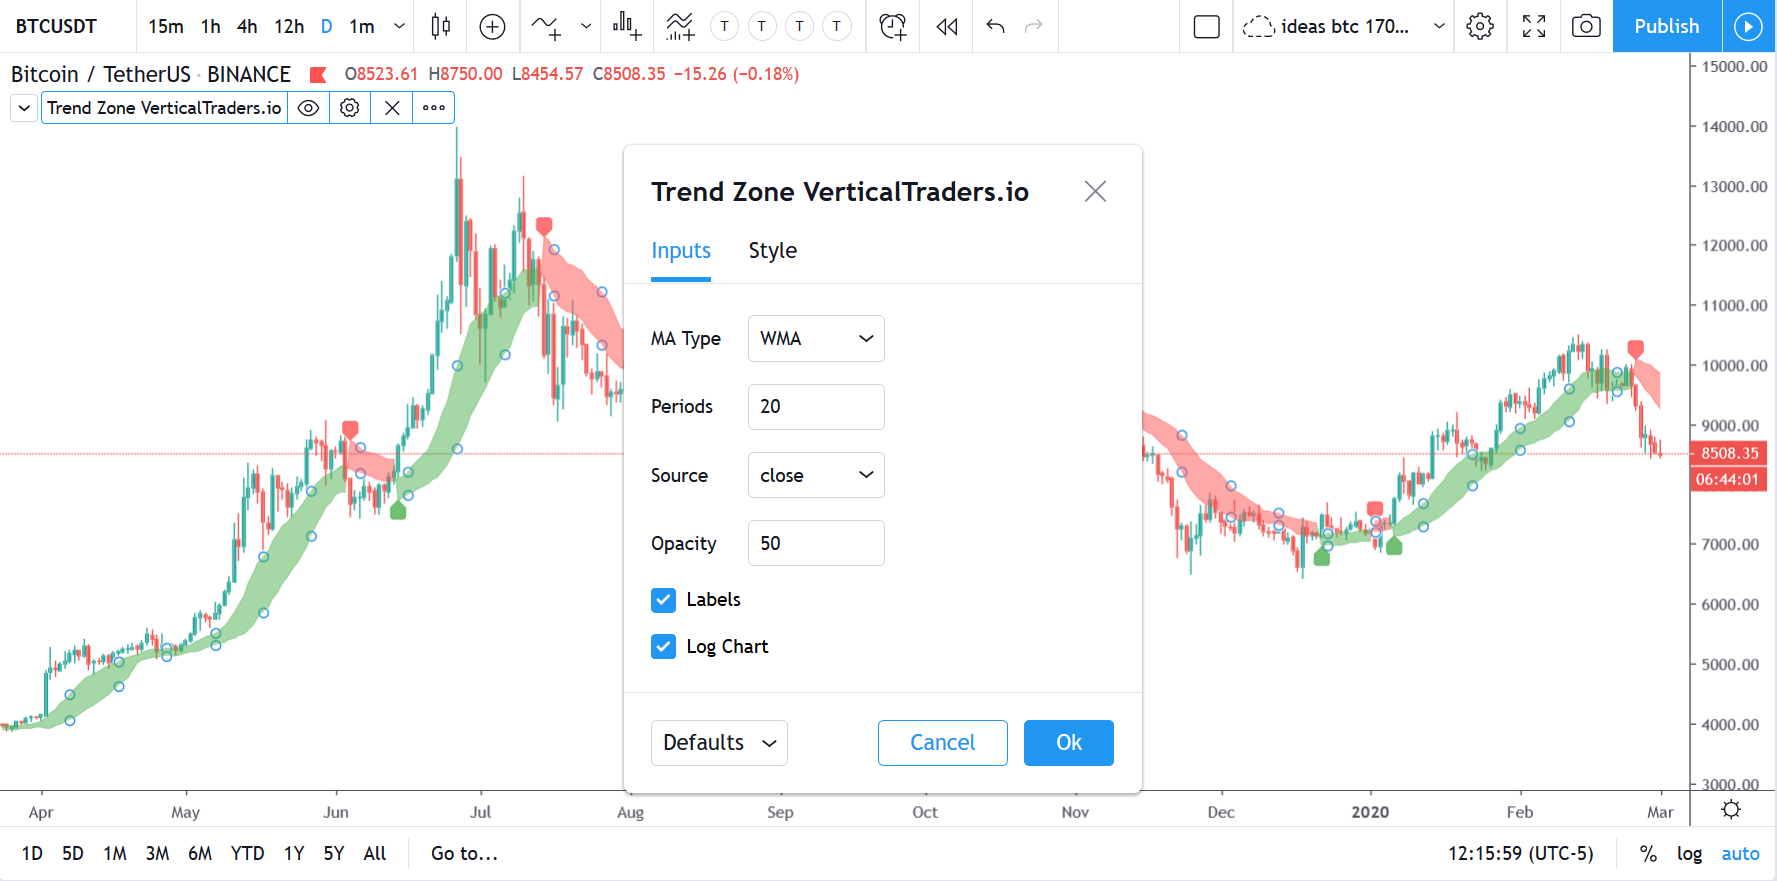 Trend Zone (go with the flow)